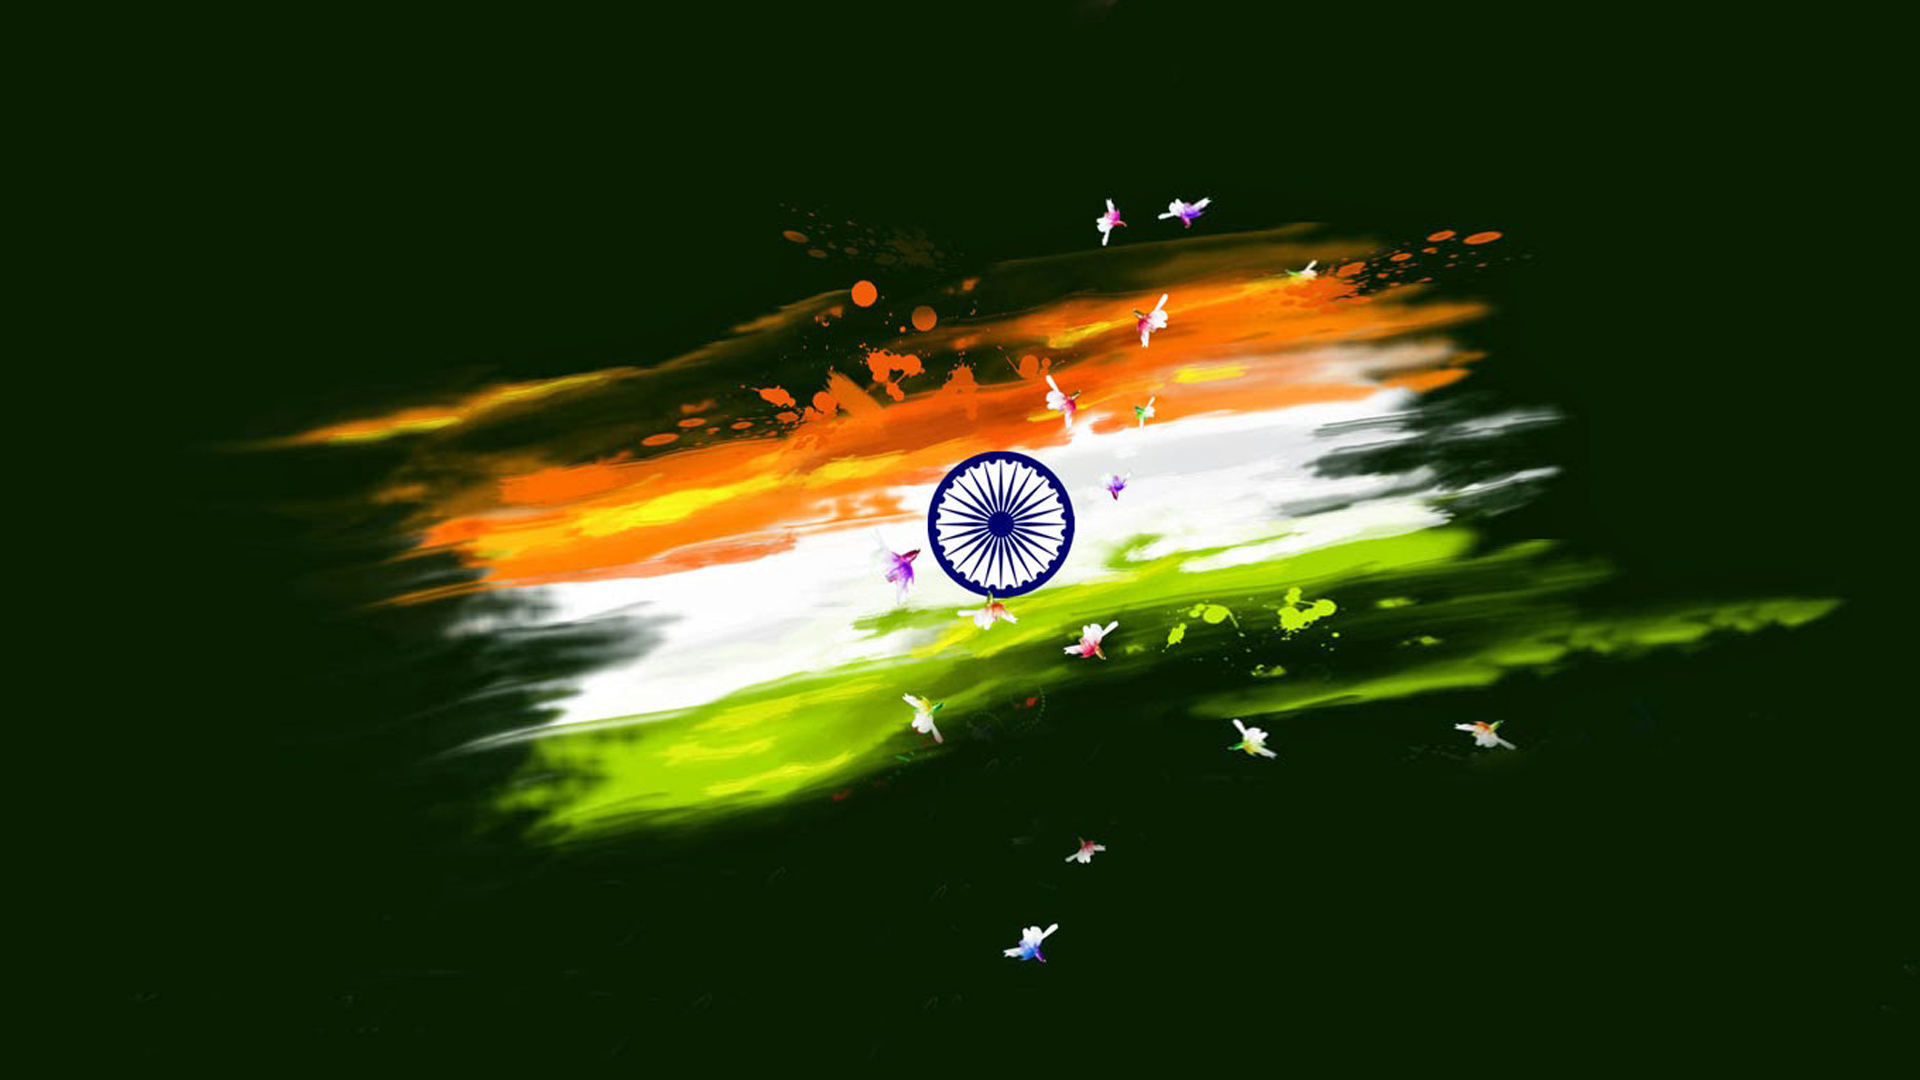 abstract paint india flag for independence day wallpaper in hd 1080p